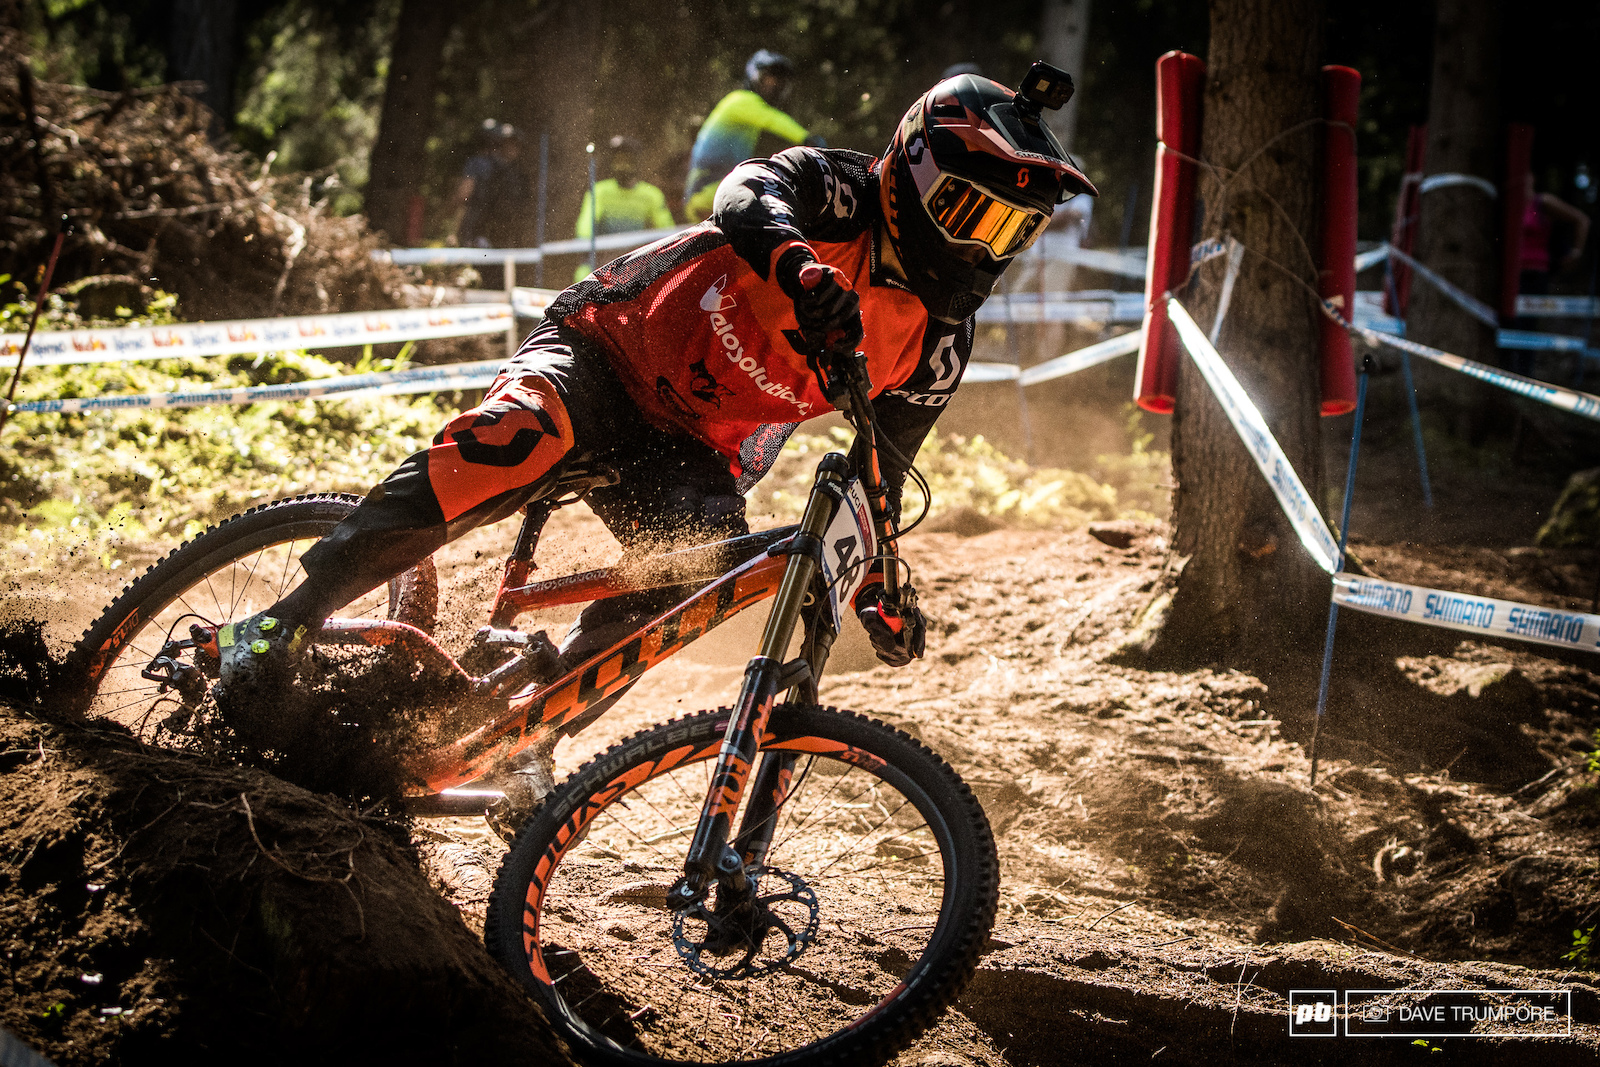 Gaetan Vige roosting his own top tube as he enters the first section of woods.